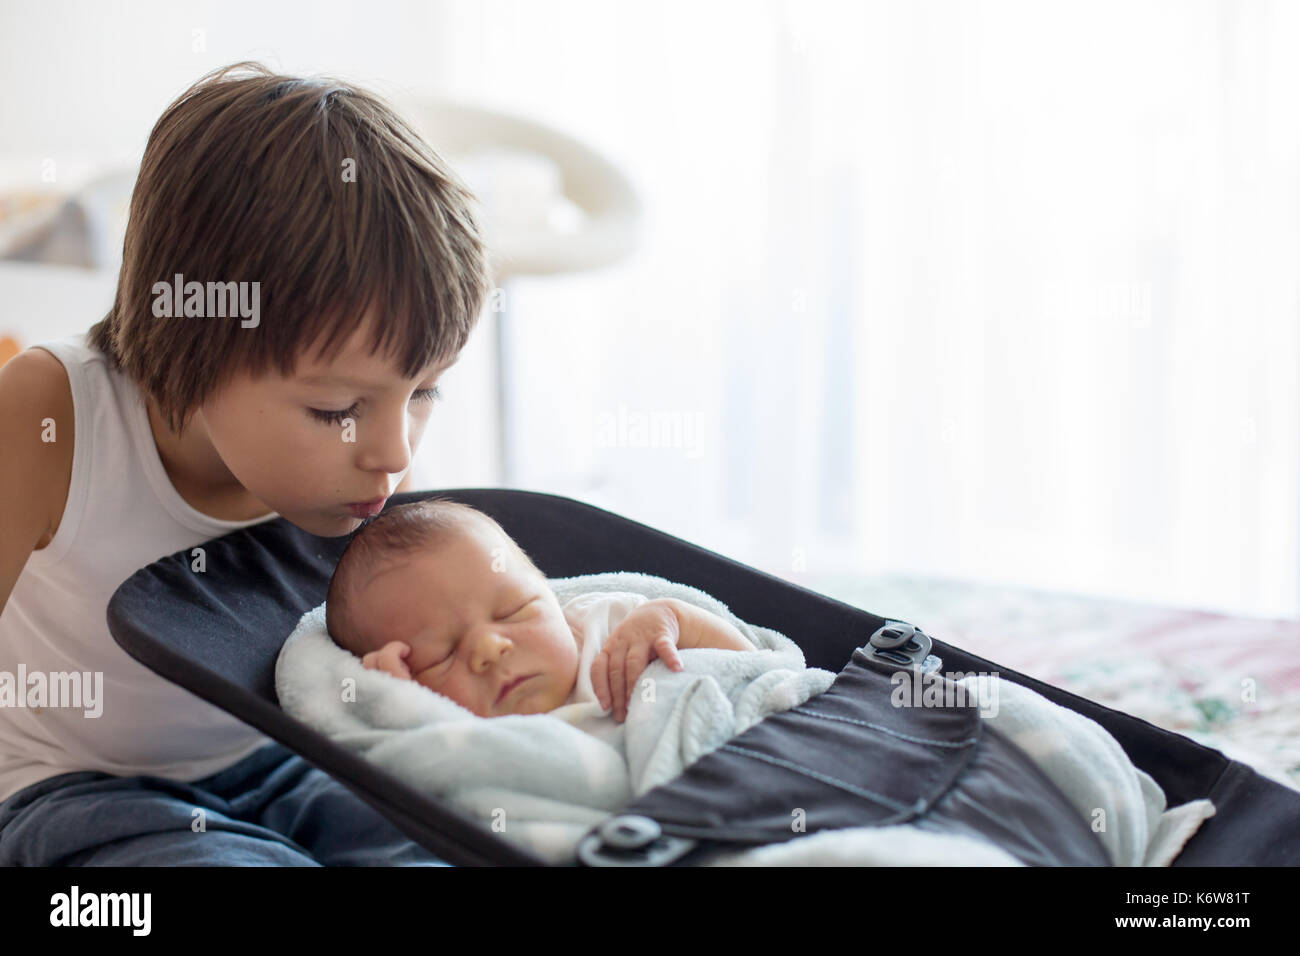 Beautiful boy, hugging with tenderness and care his newborn baby brother at home. Family love happiness concept - Stock Image